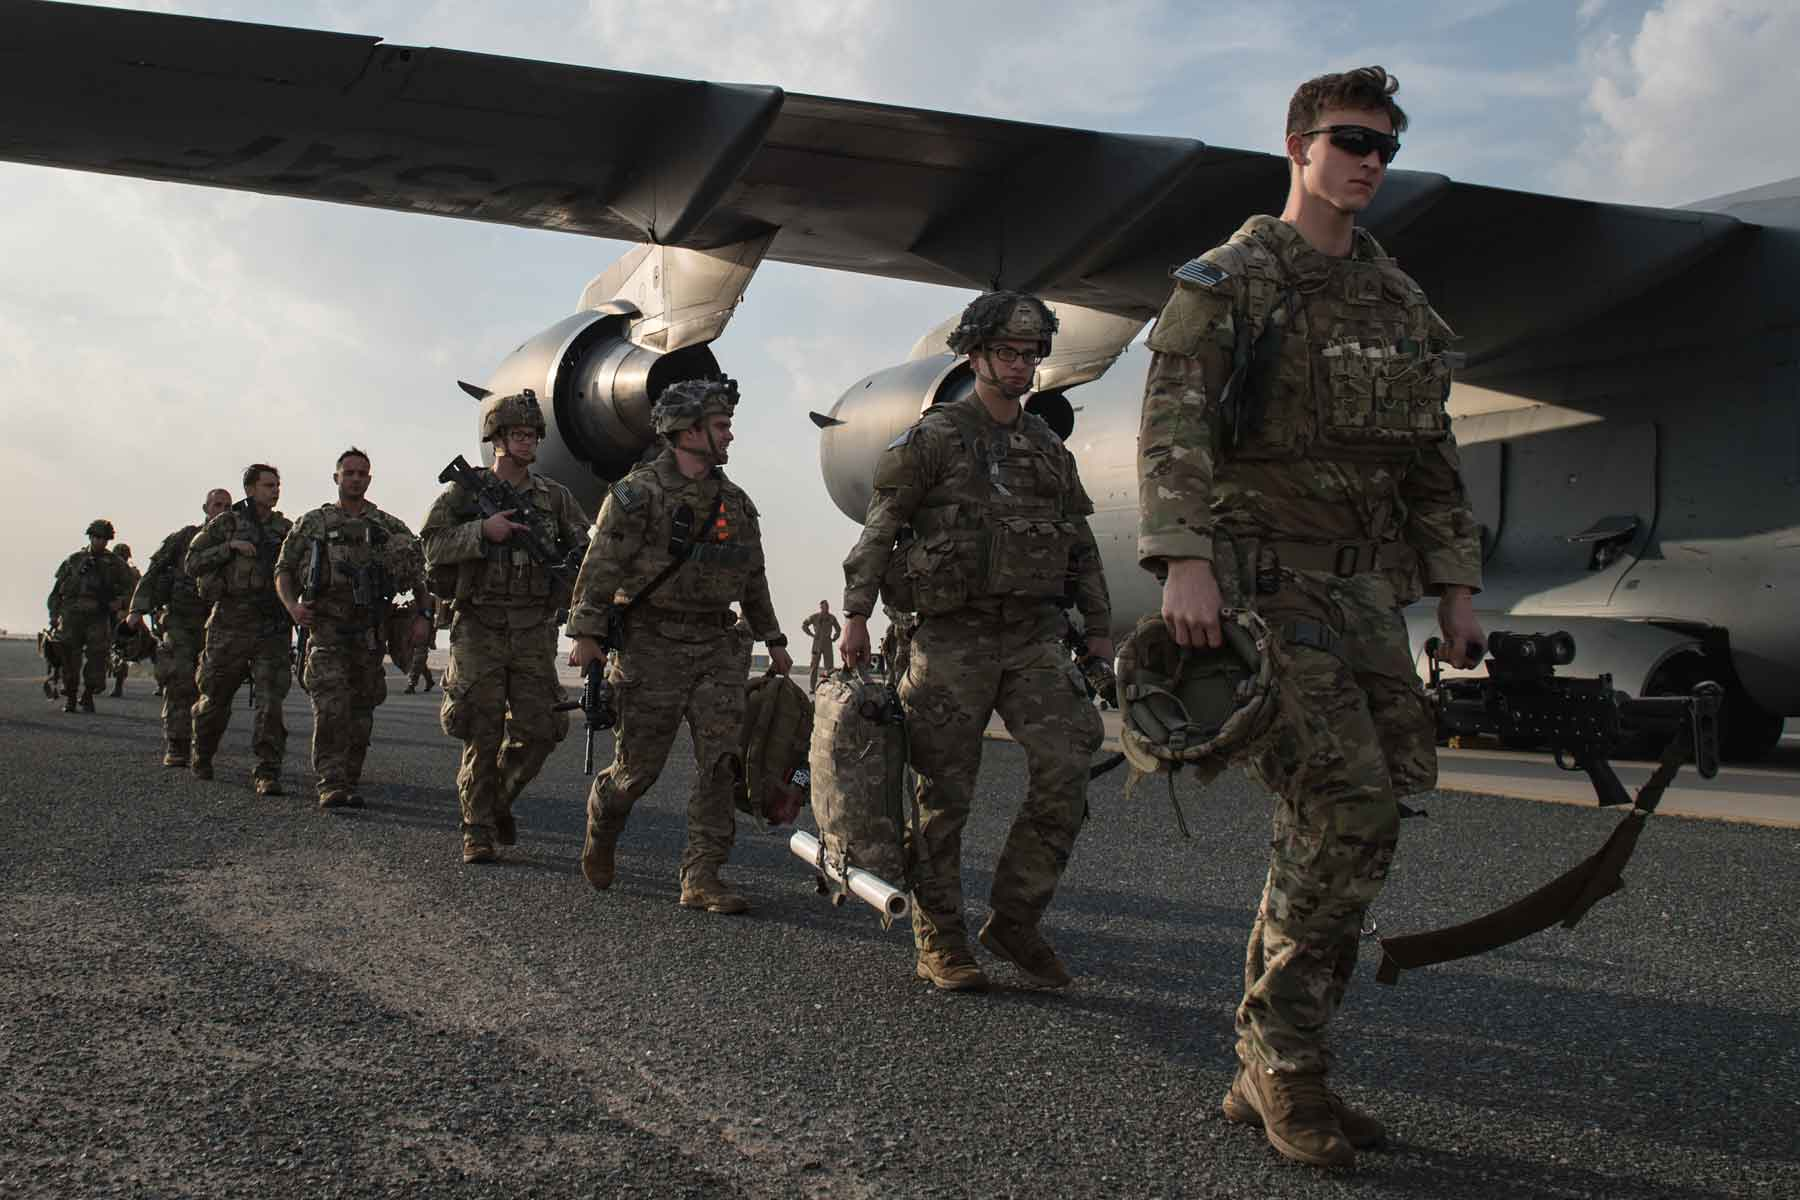 U.S Army • Special Forces • Support WSINT • 12 Dec 2020